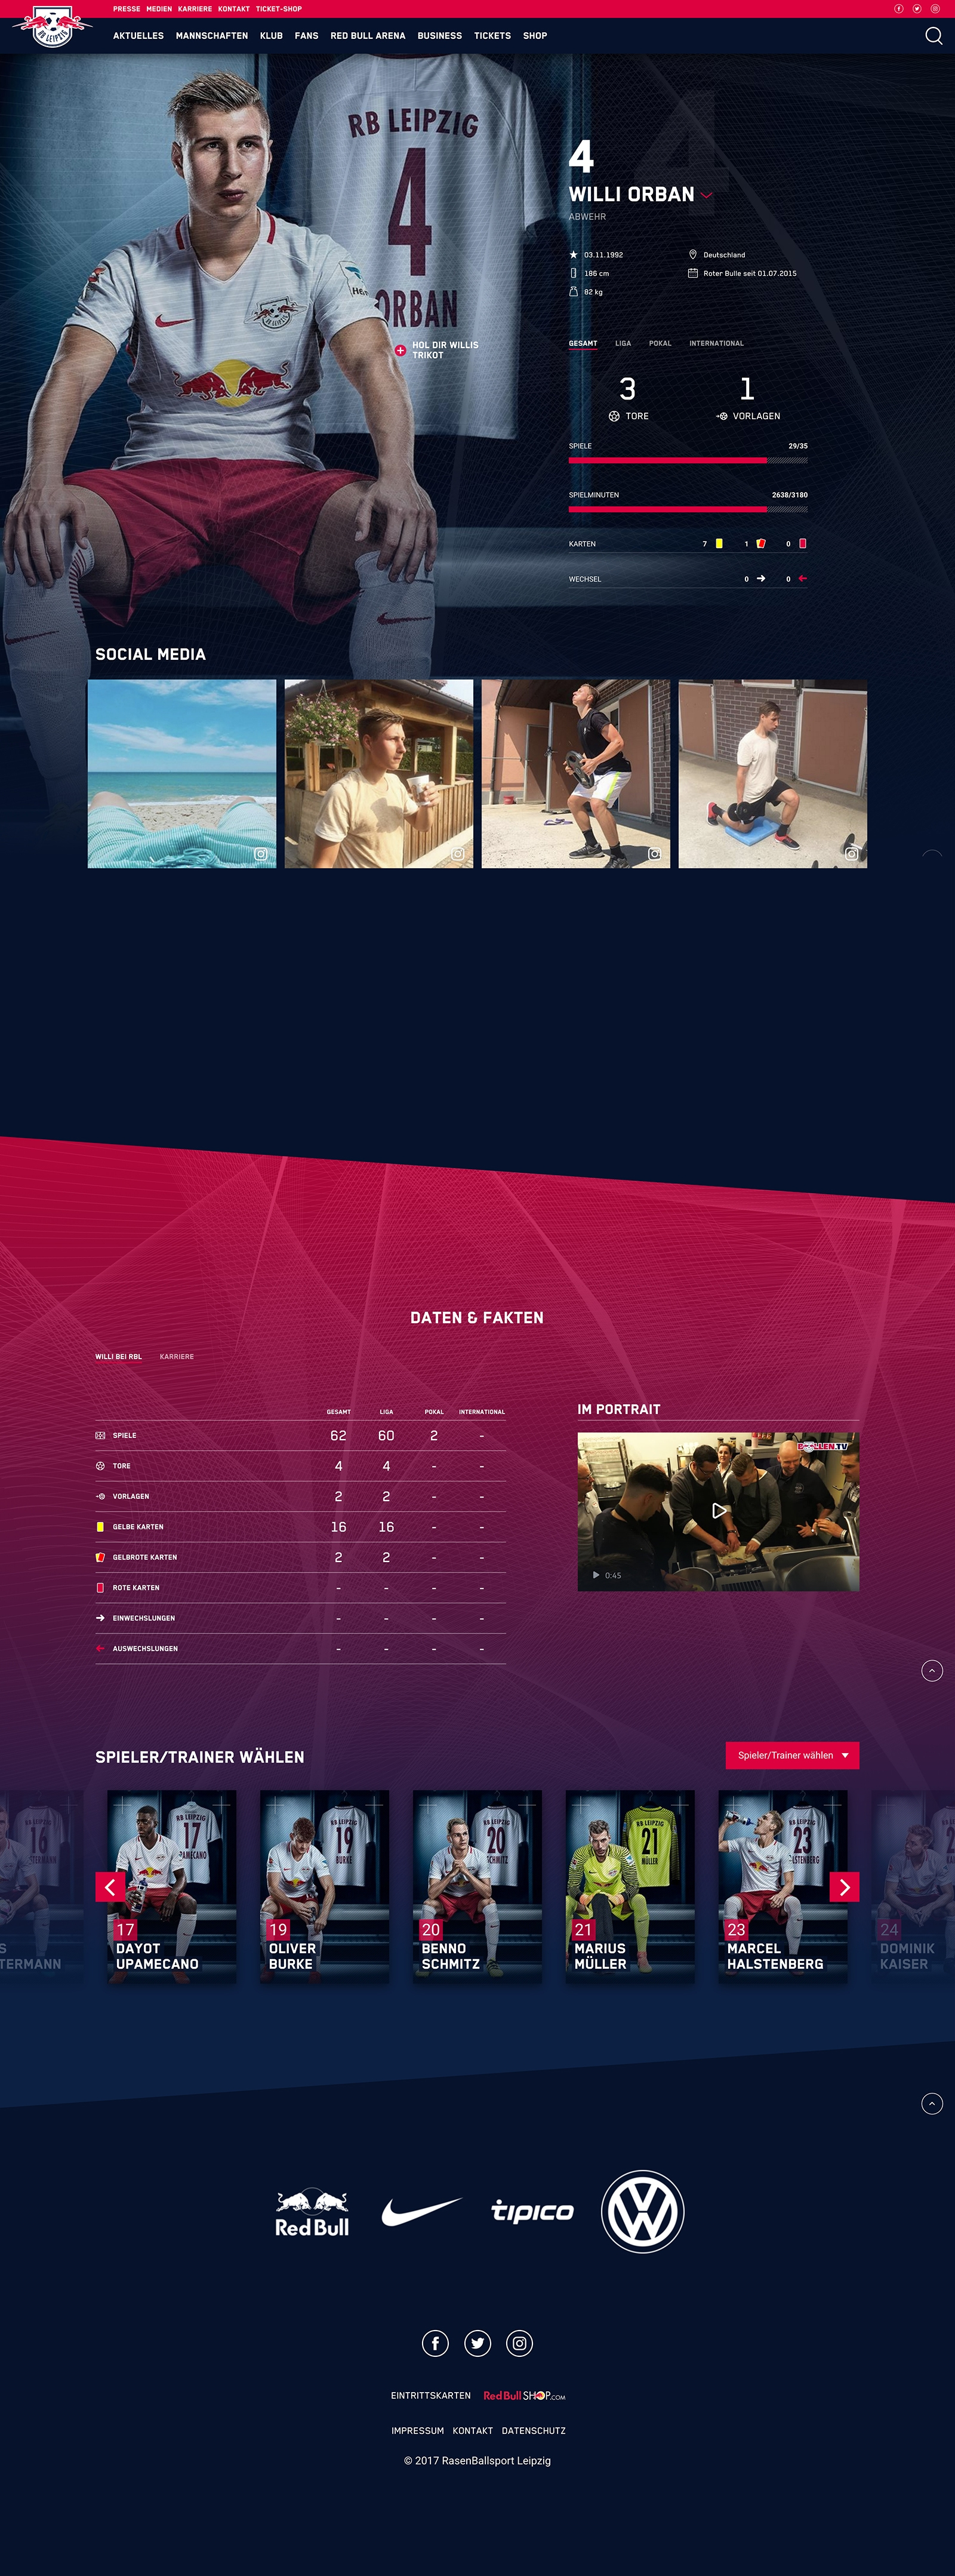 Rb Leipzig Website Relaunch 2017 Image 08